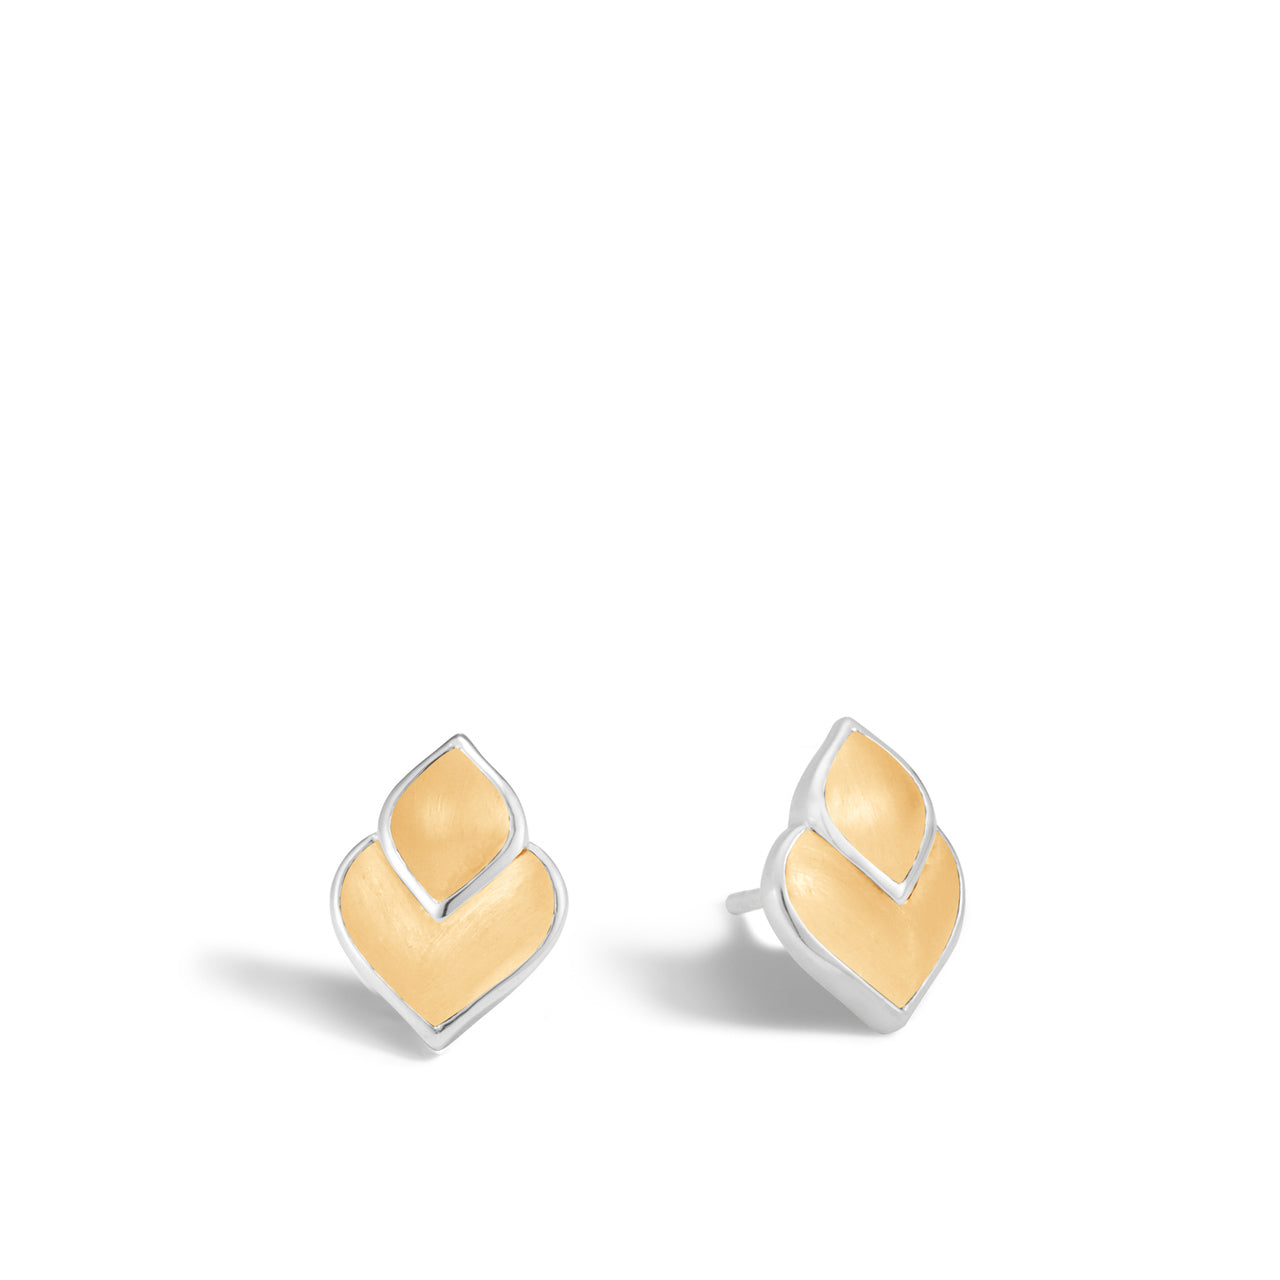 John Hardy Legends Naga Sterling Silver and Gold Stud Earrings